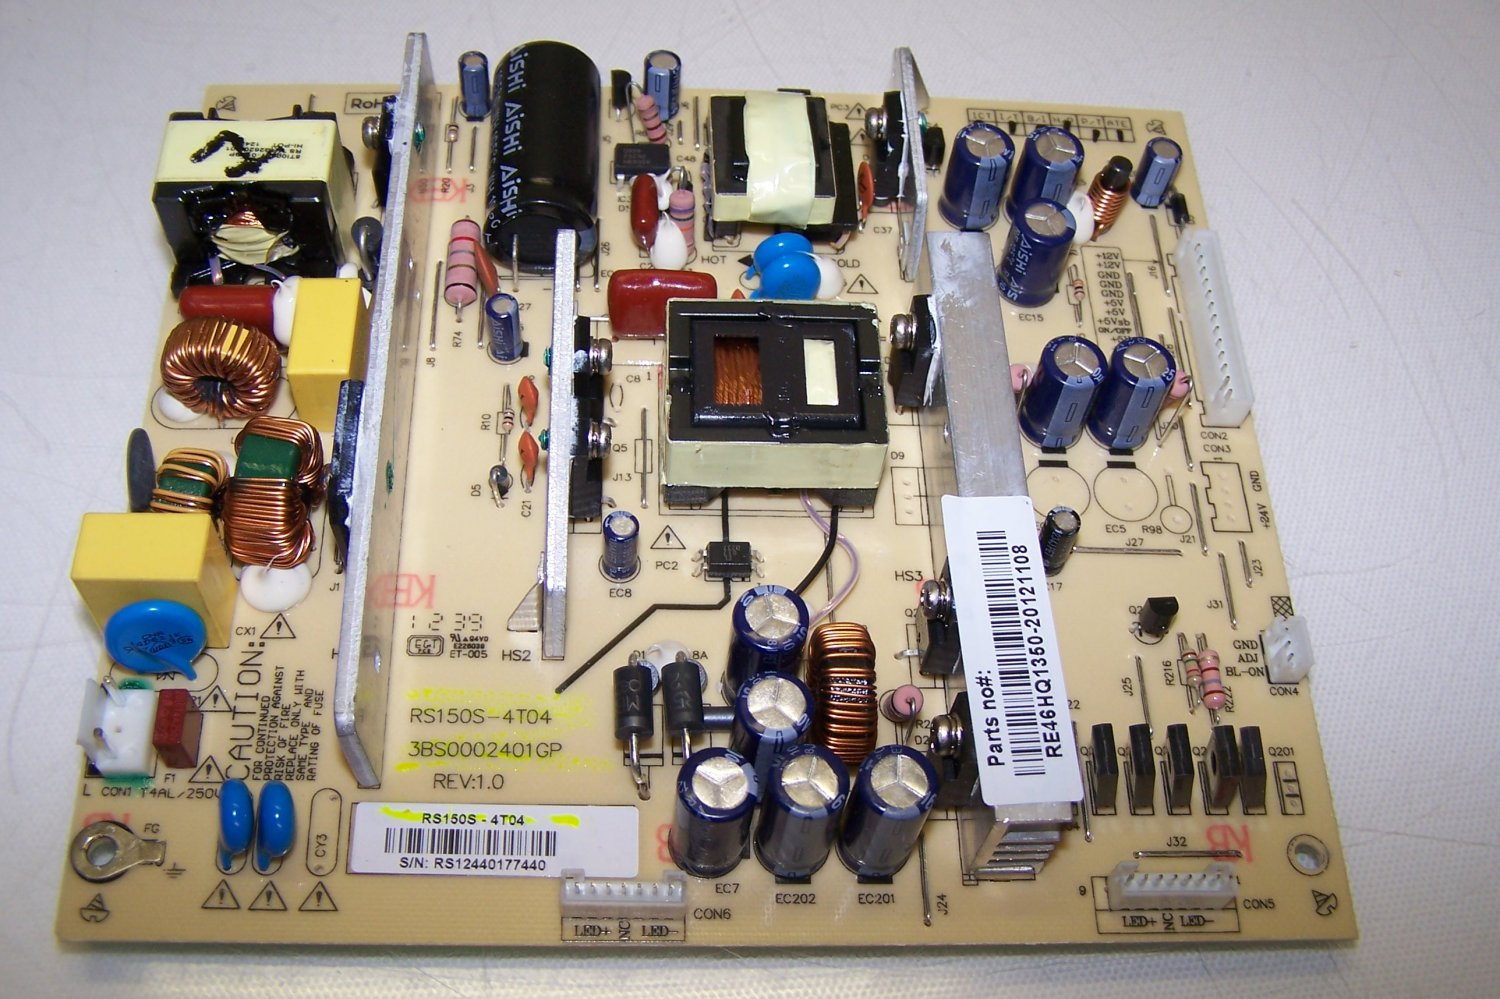 POWER SUPPLY RS150S-4T04